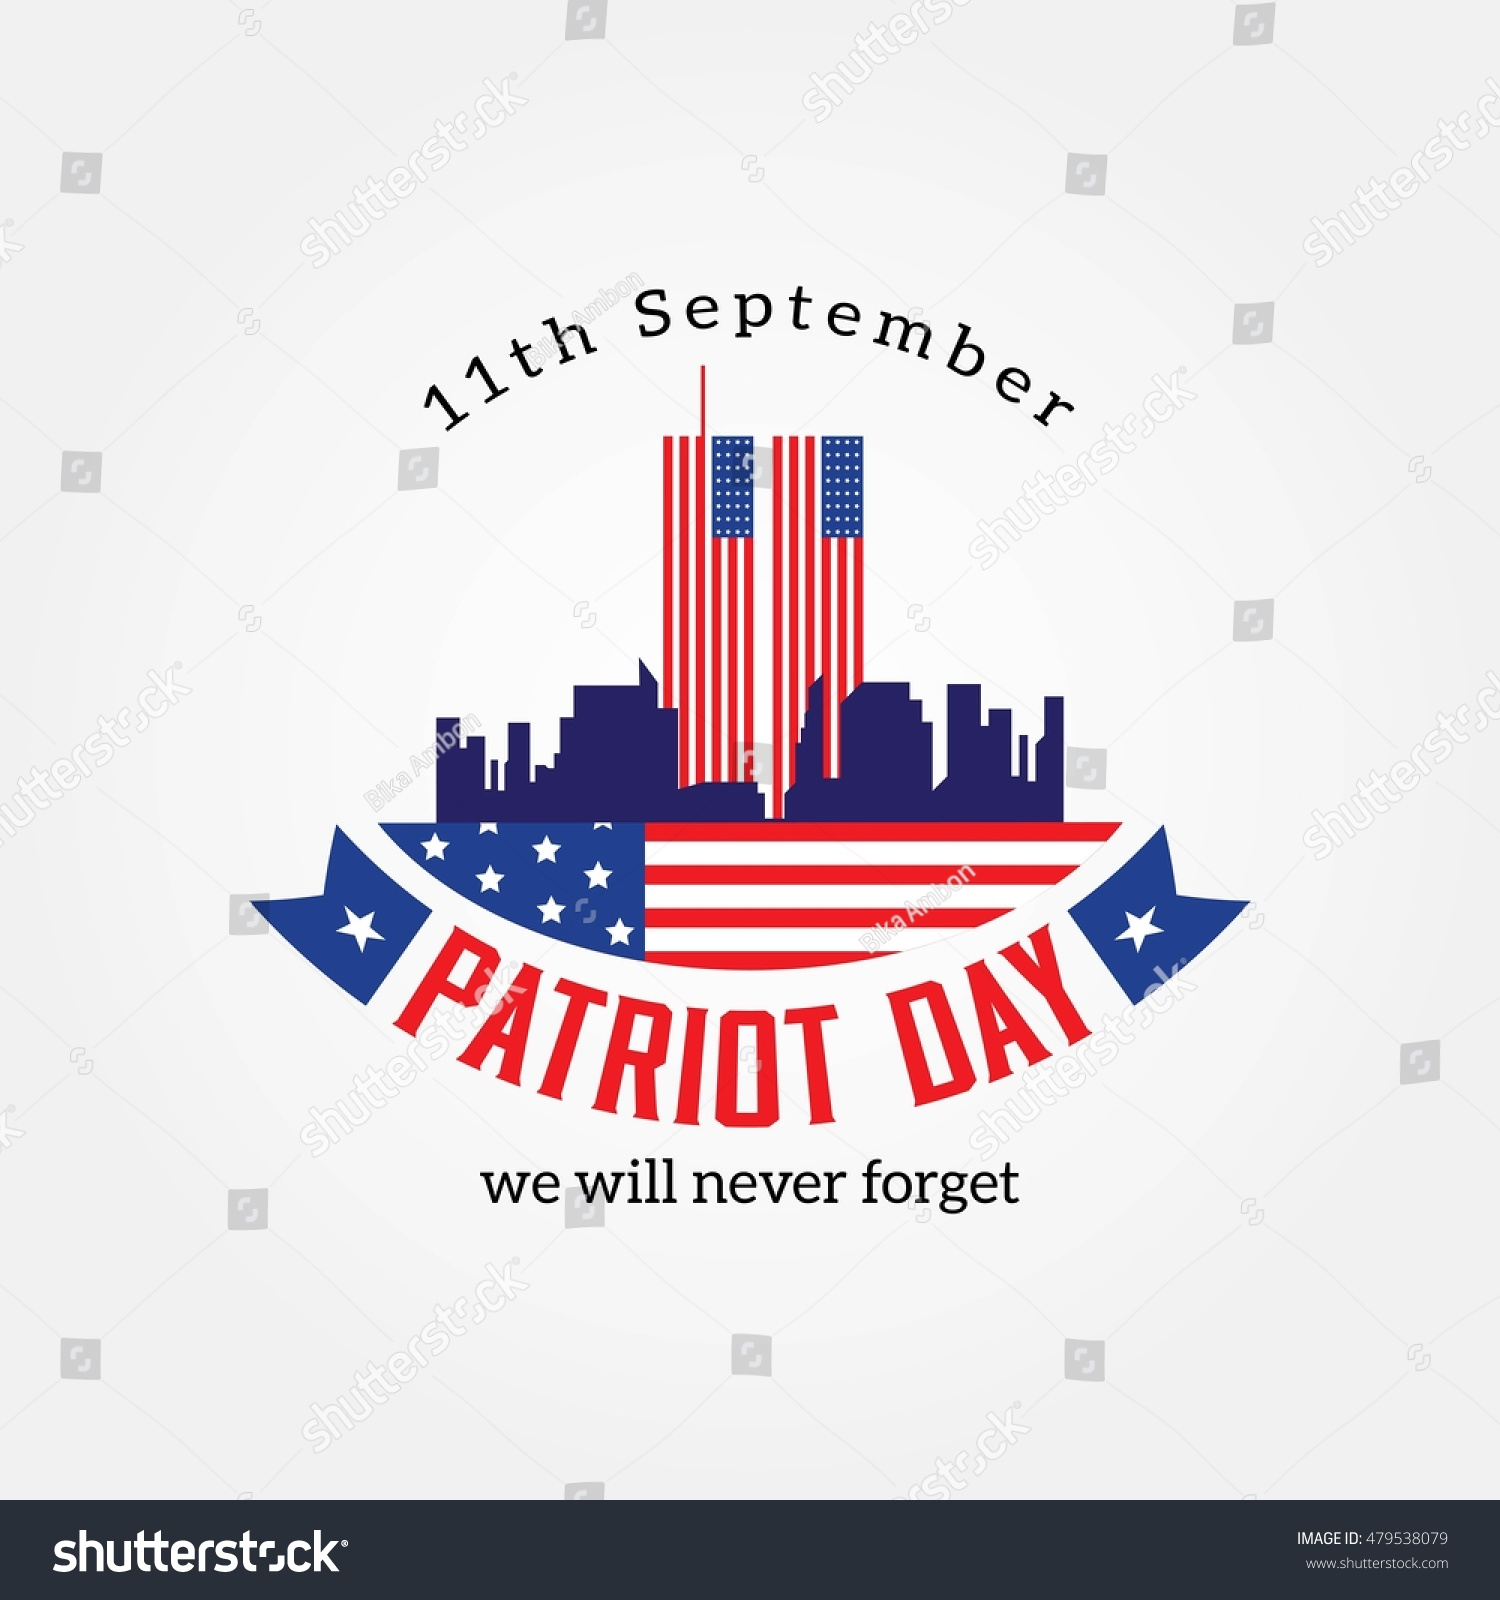 Patriot Day American Flag Patriot Day Stock Vector